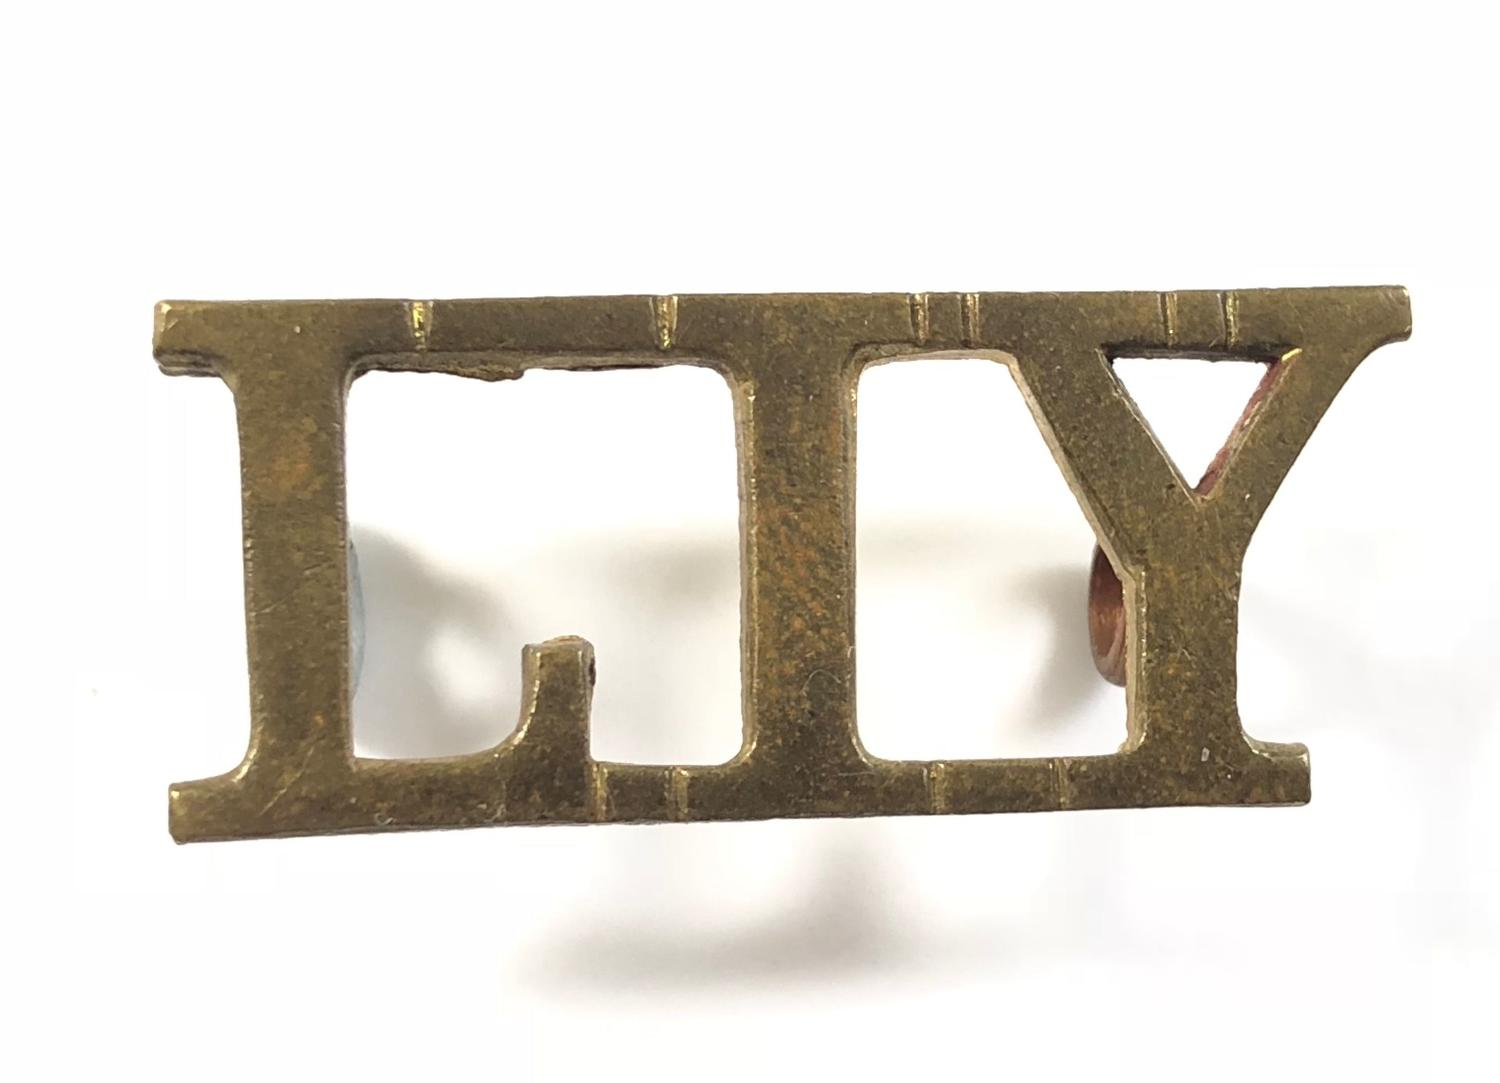 LIY brass Lanarkshire Imperial Yeomanry shoulder title